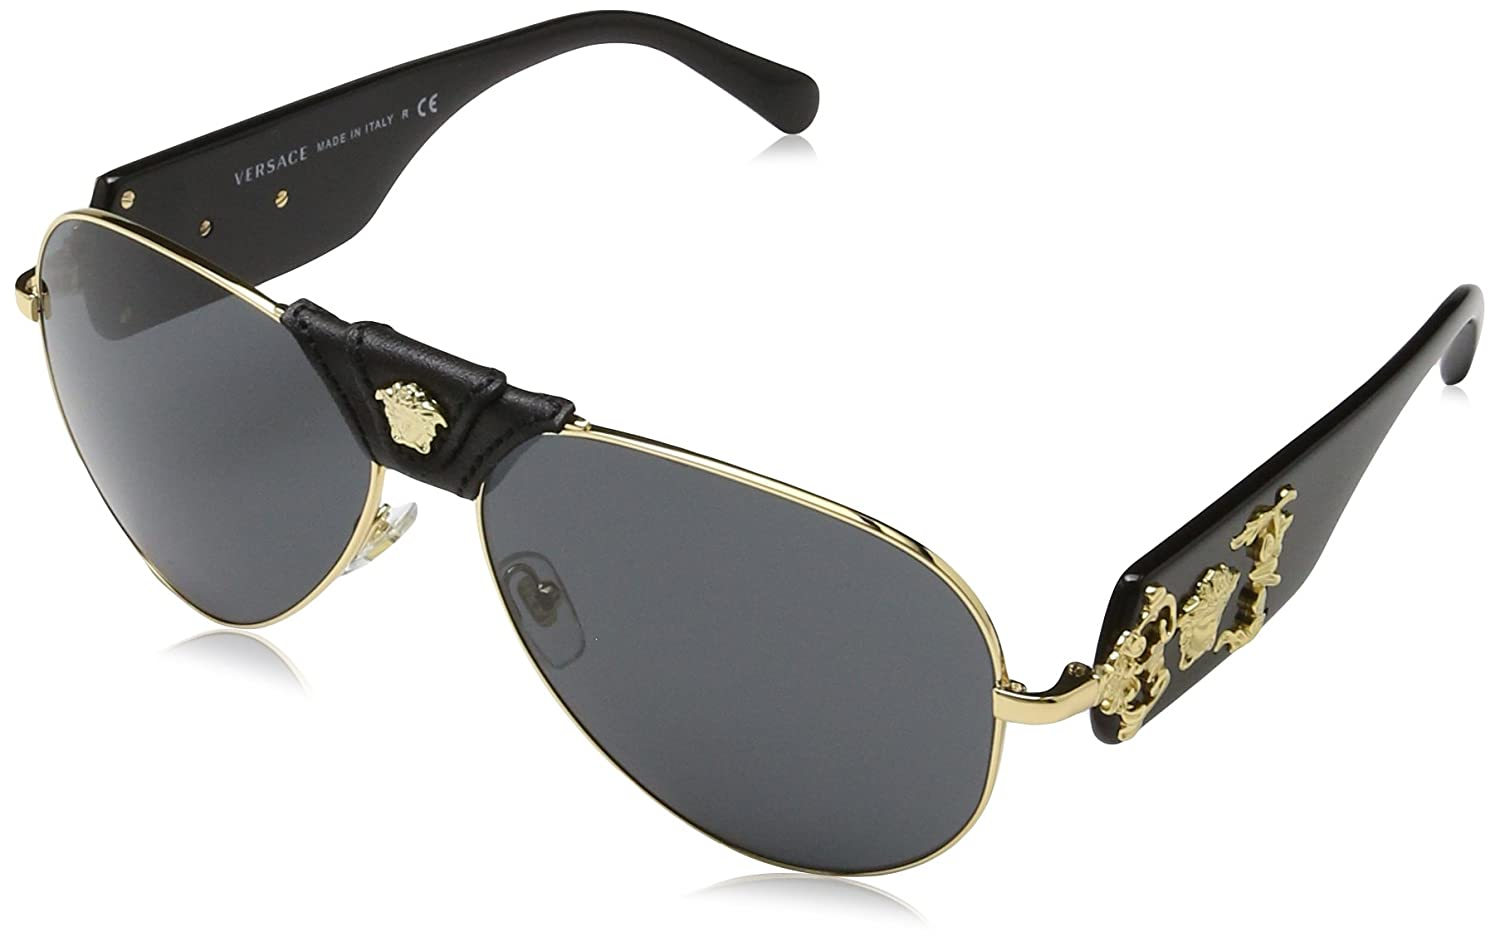 3865b1f1cf Amazon.com  Versace VE2150Q - 100287 Gold Black Aviator Sunglasses 62mm   Versace  Shoes